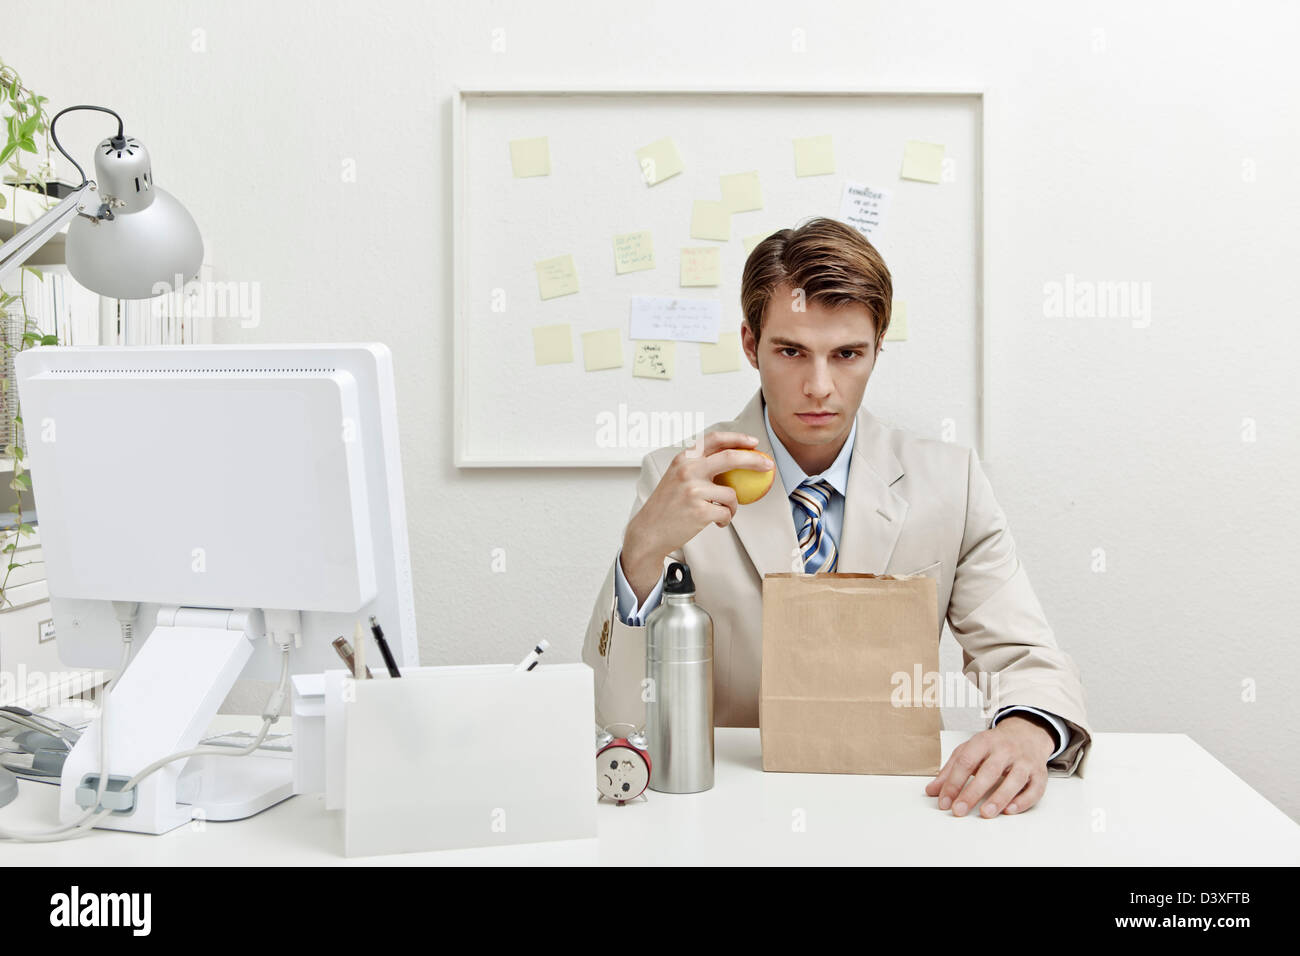 A concept photo of a young office worker trying to save money by bringing lunch to work. - Stock Image